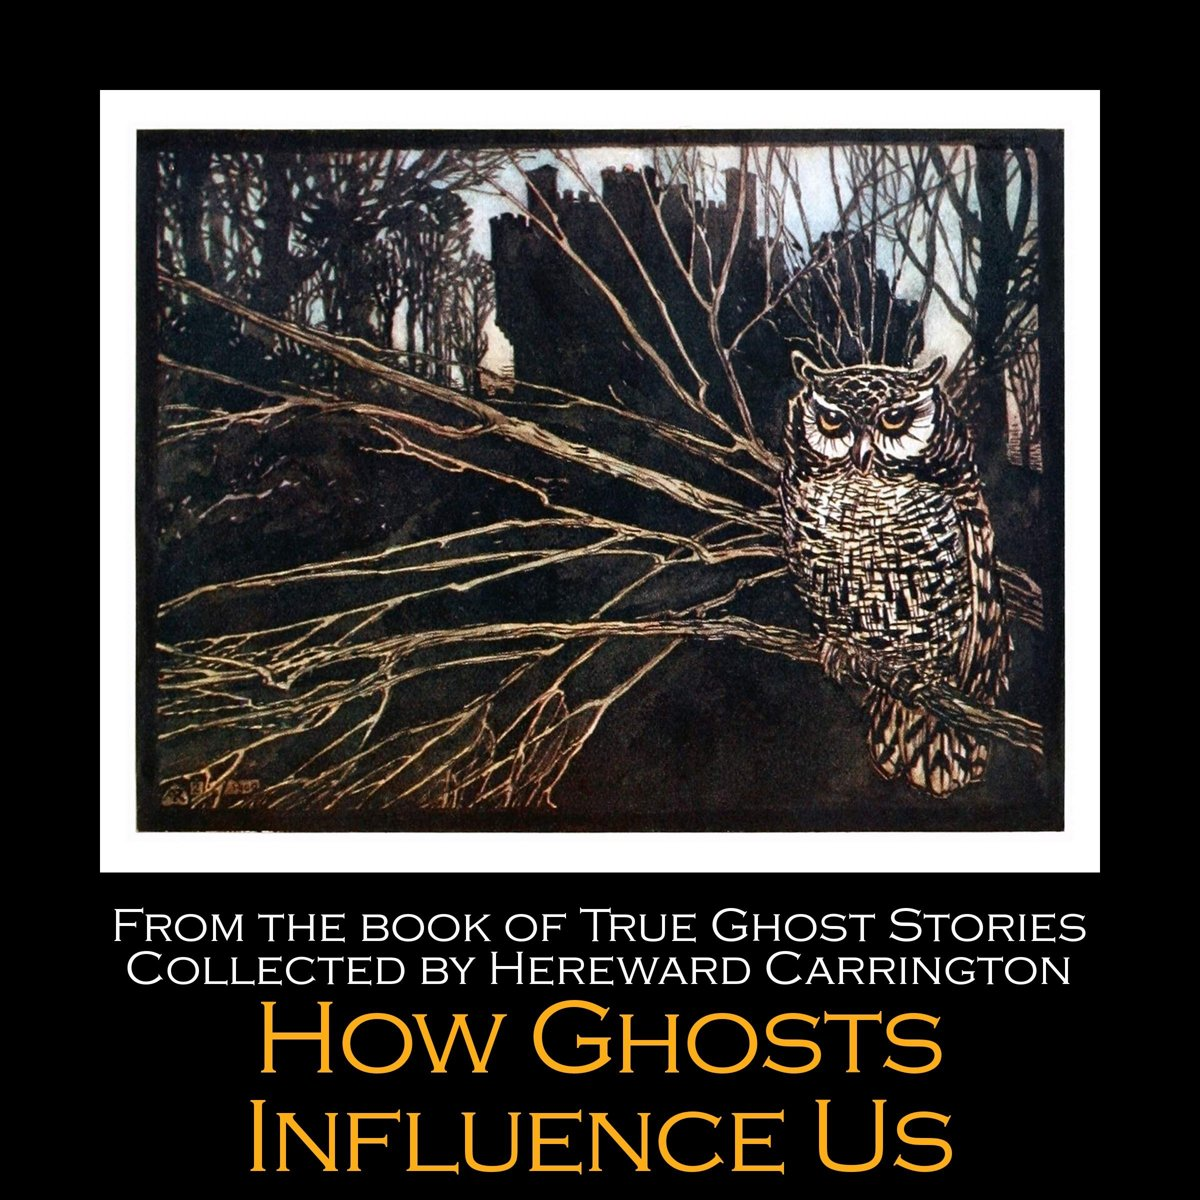 How Ghosts Influence Us